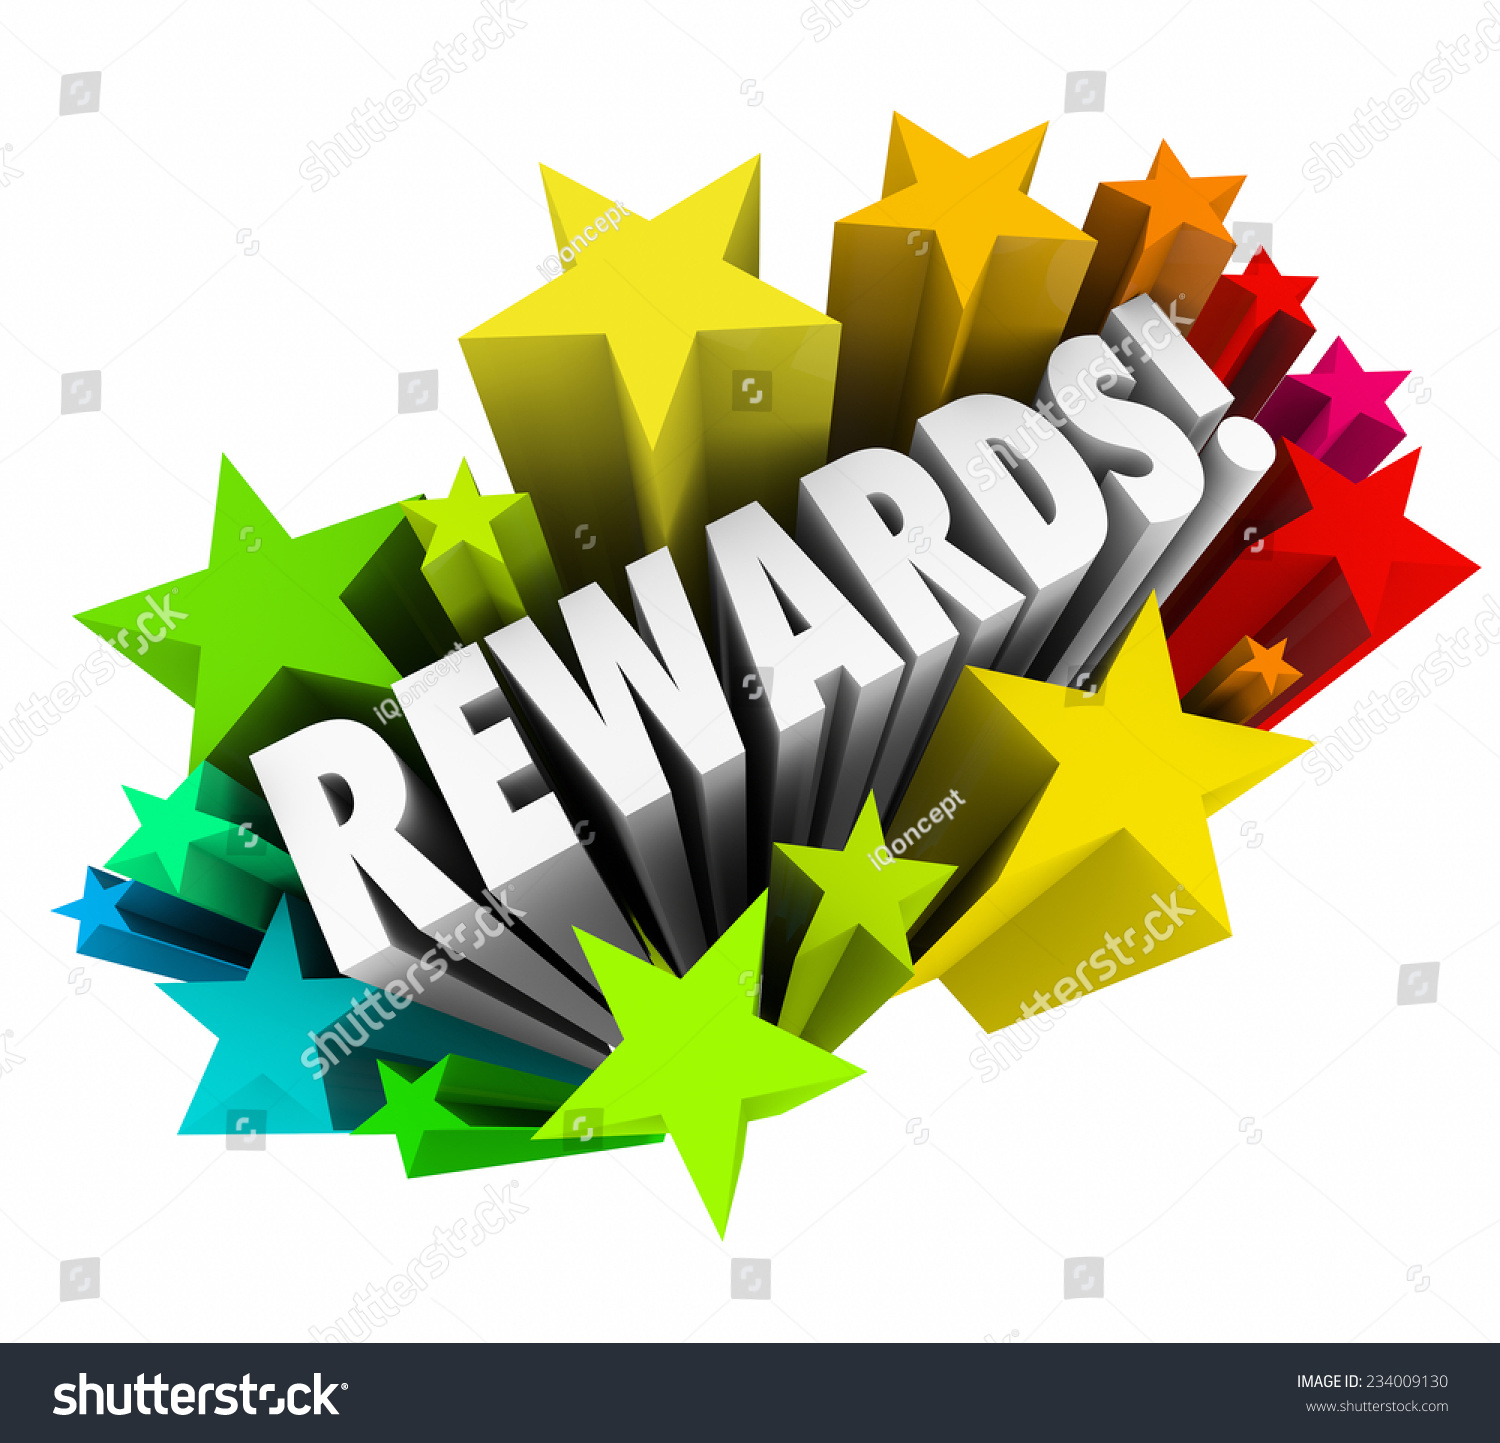 Image result for rewards